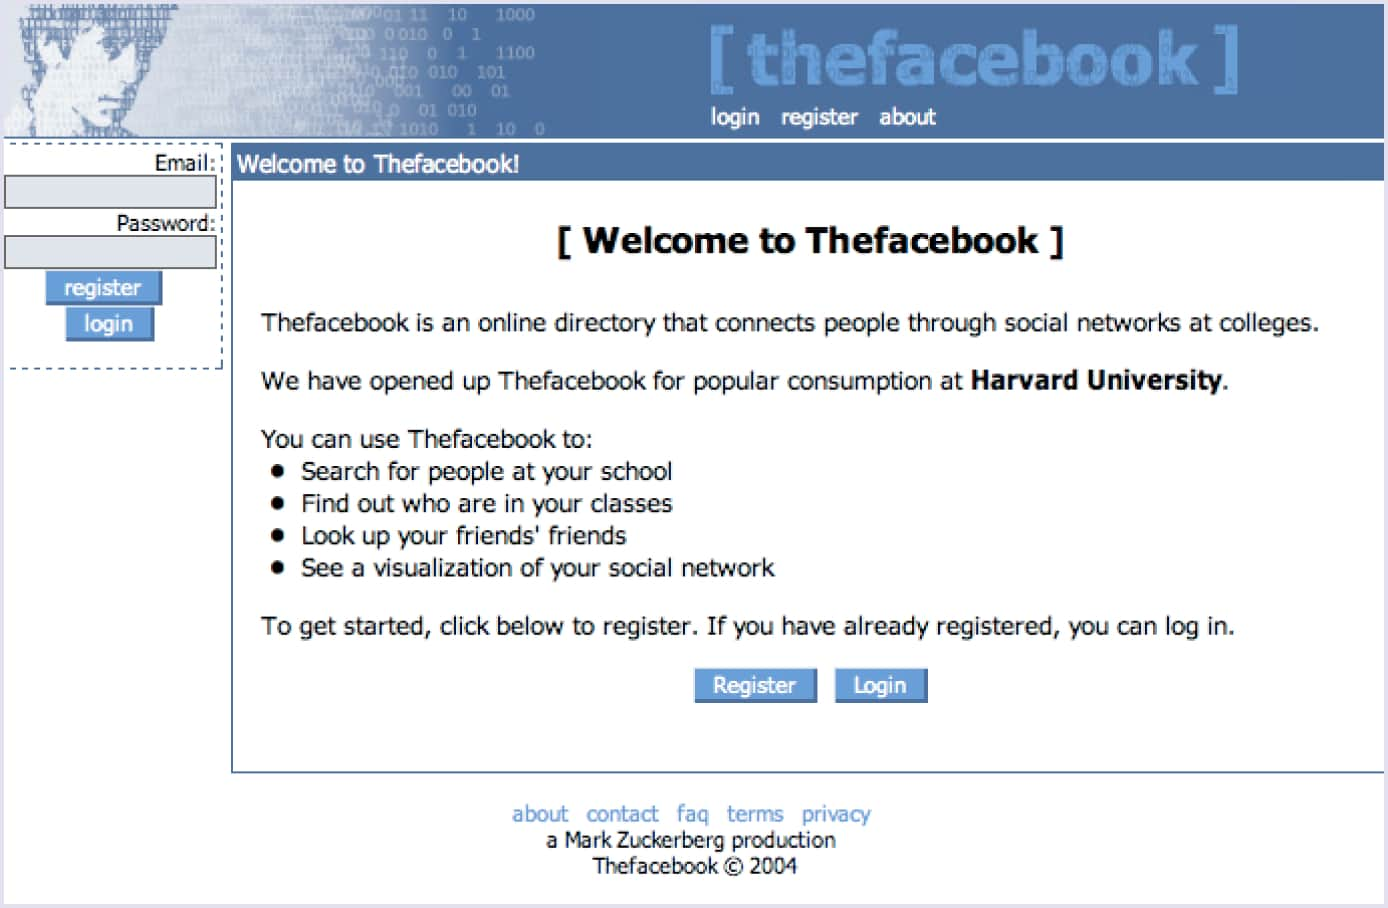 Example of a minimum viable product by Facebook